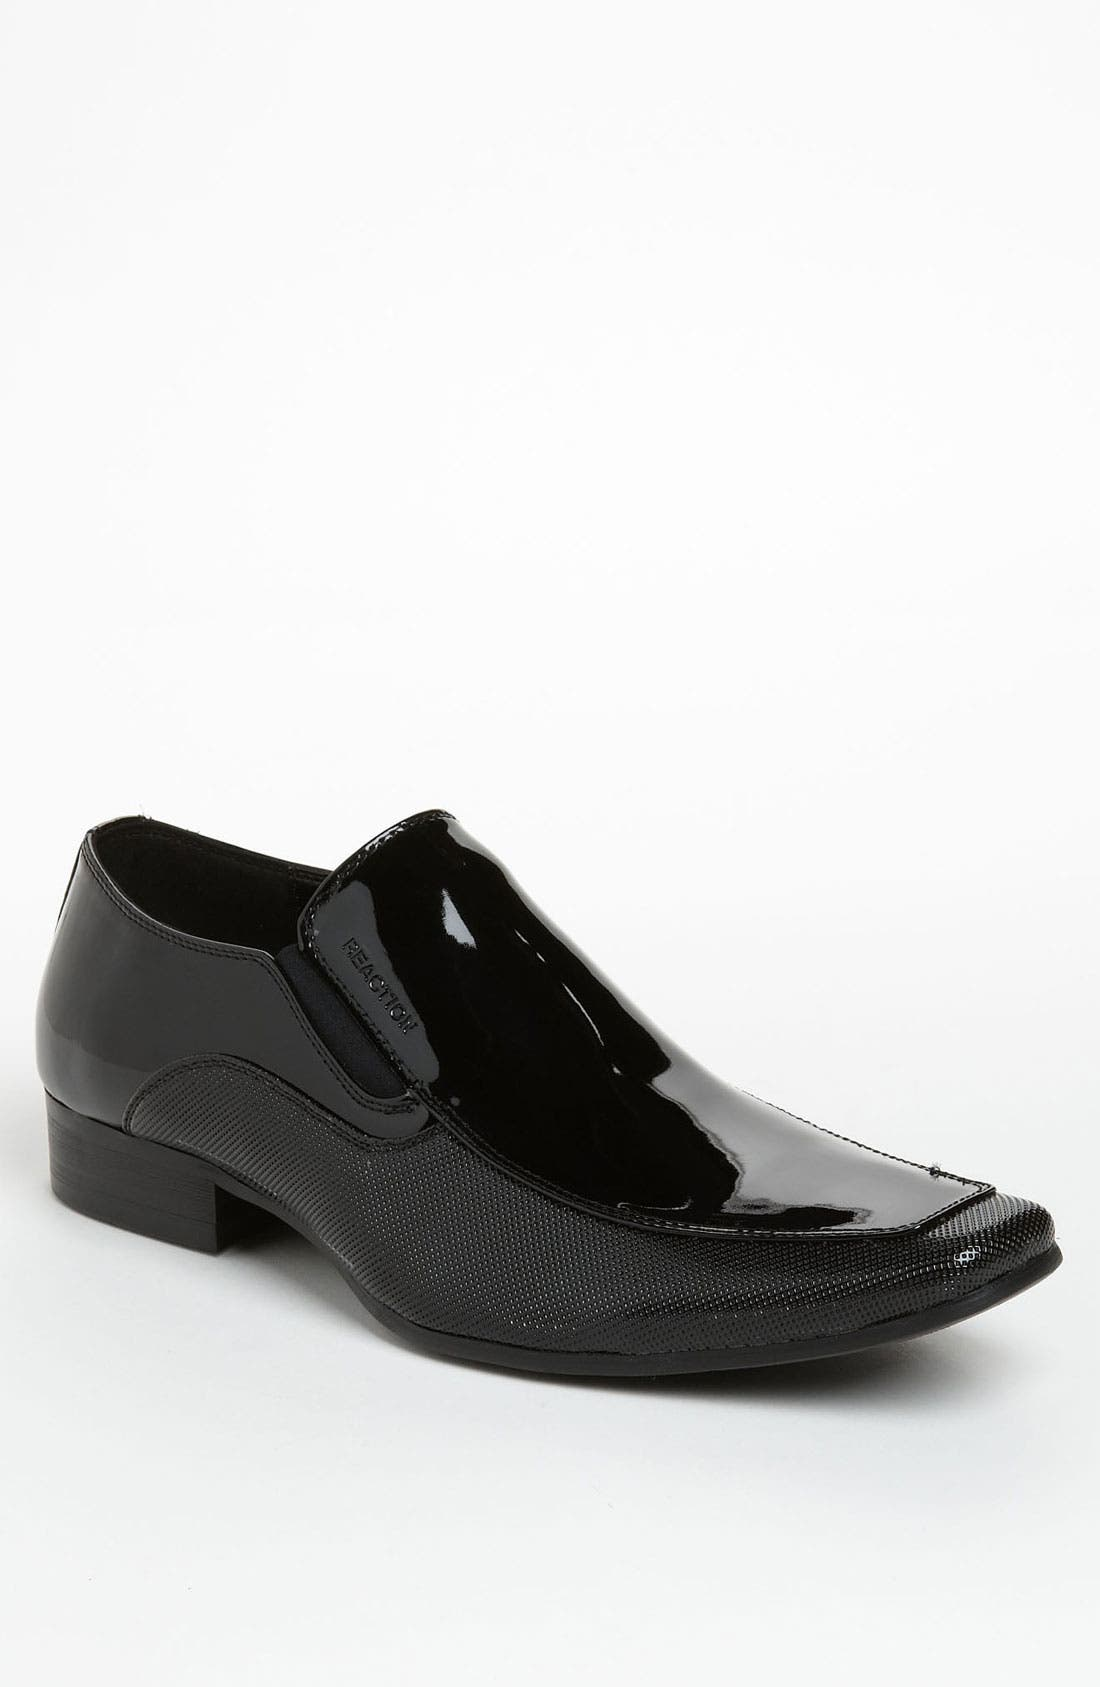 Main Image - Kenneth Cole Reaction 'Income Tux' Loafer